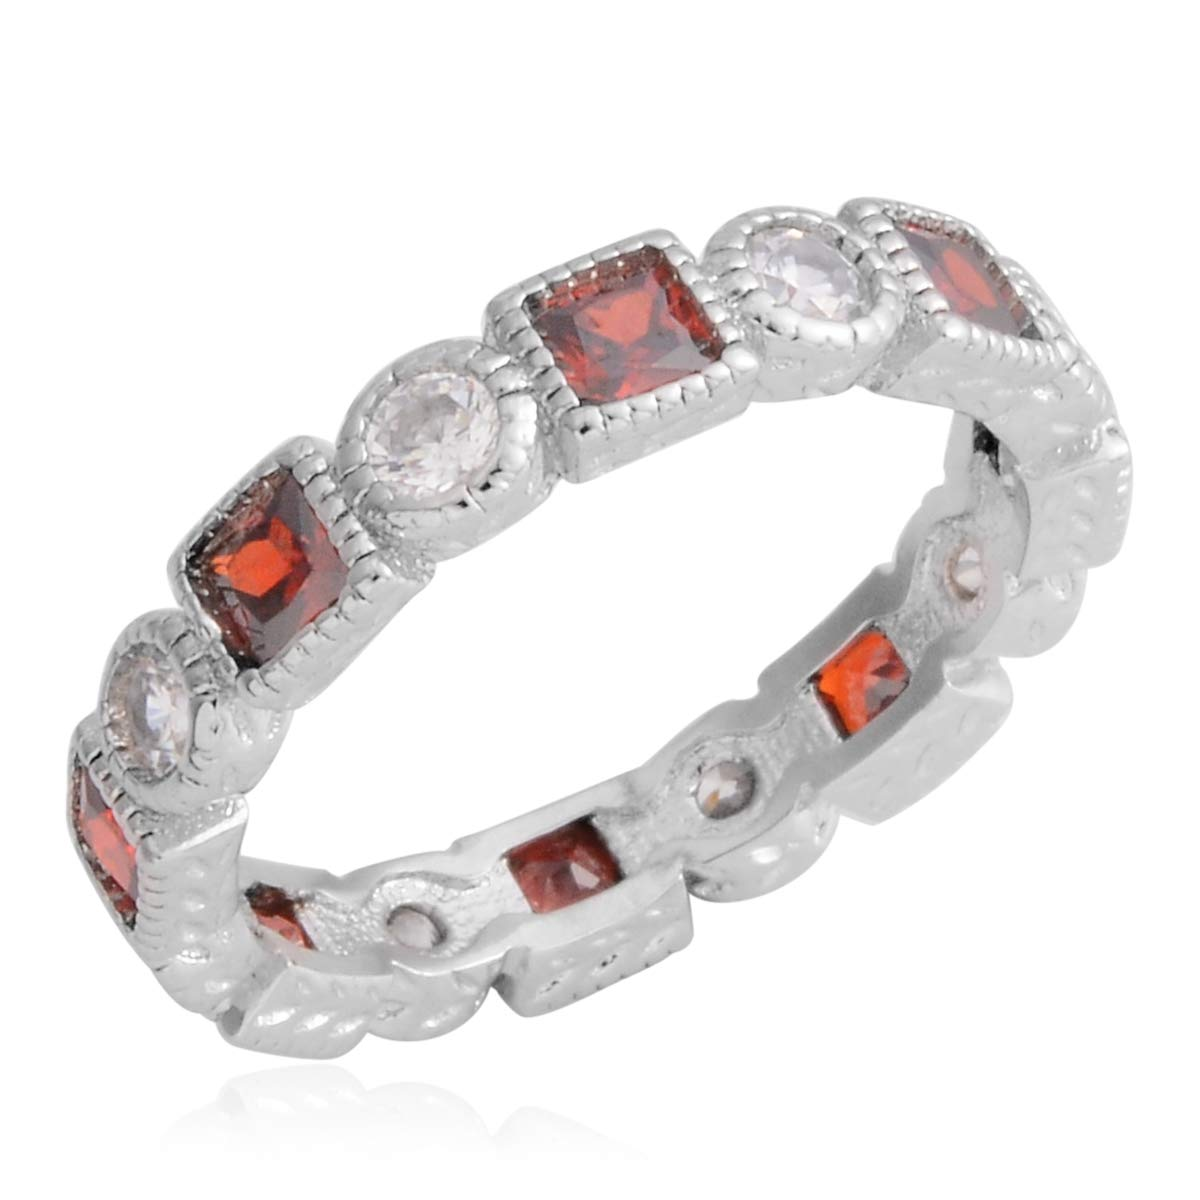 Round White Cubic Zirconia Ruby Cubic Zirconia Band Fashion Ring for Women Size 6